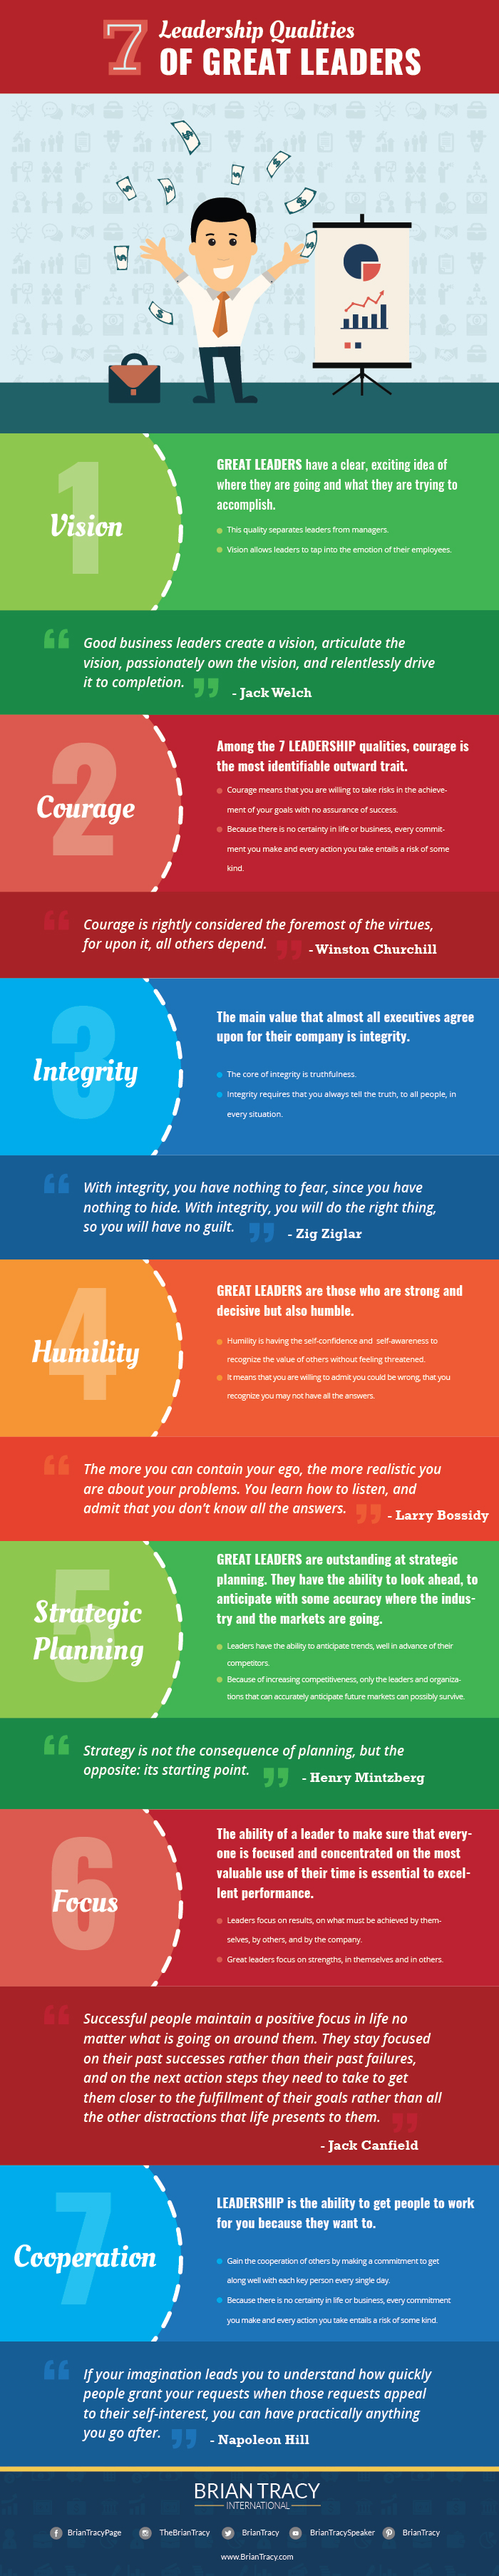 the best leadership qualities infographic brian tracy see the full size infographic here